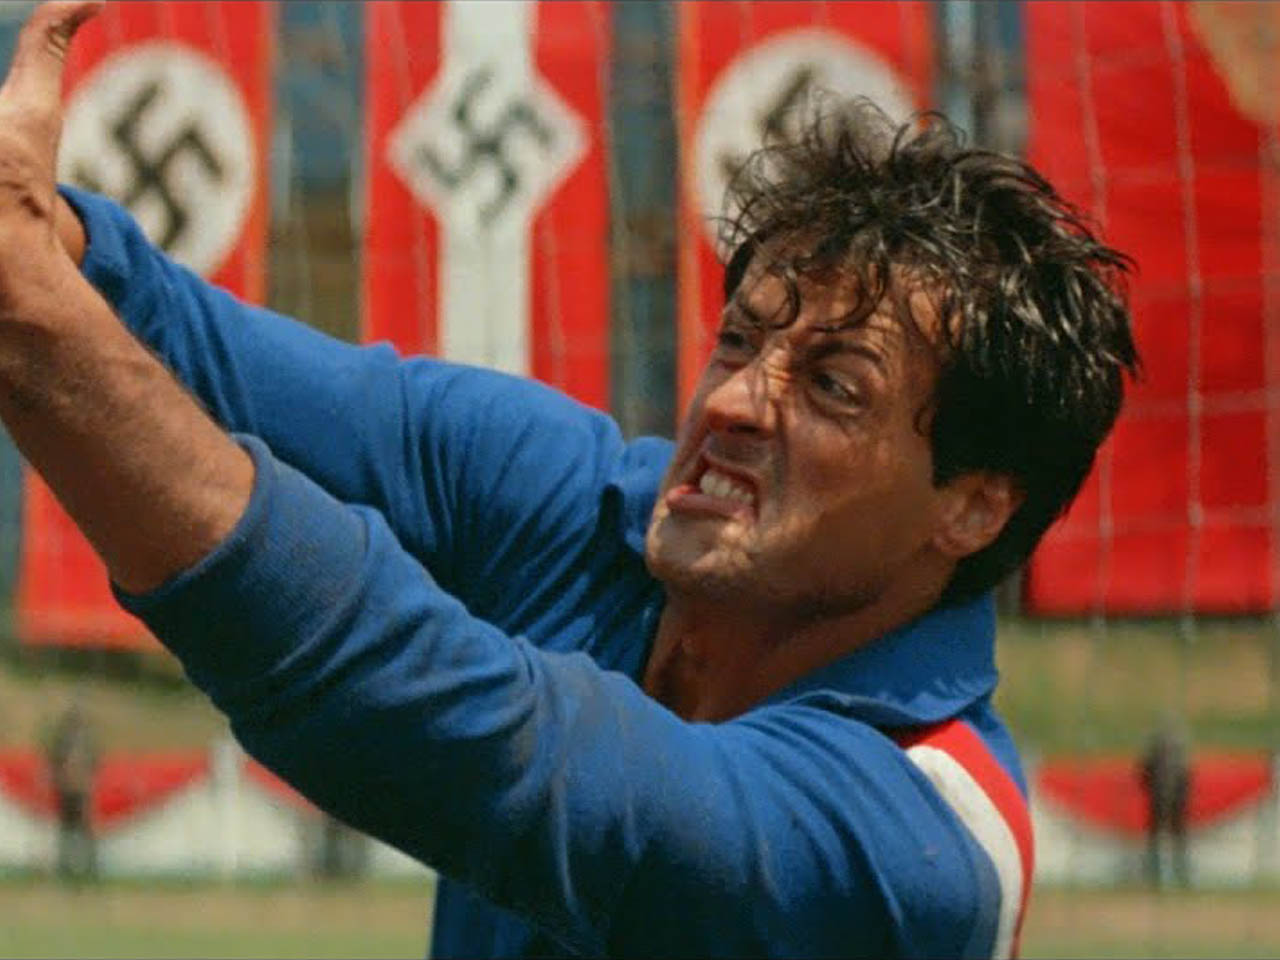 1981 Movie Project - Escape to Victory - 011981 Movie Project - Escape to Victory - 01